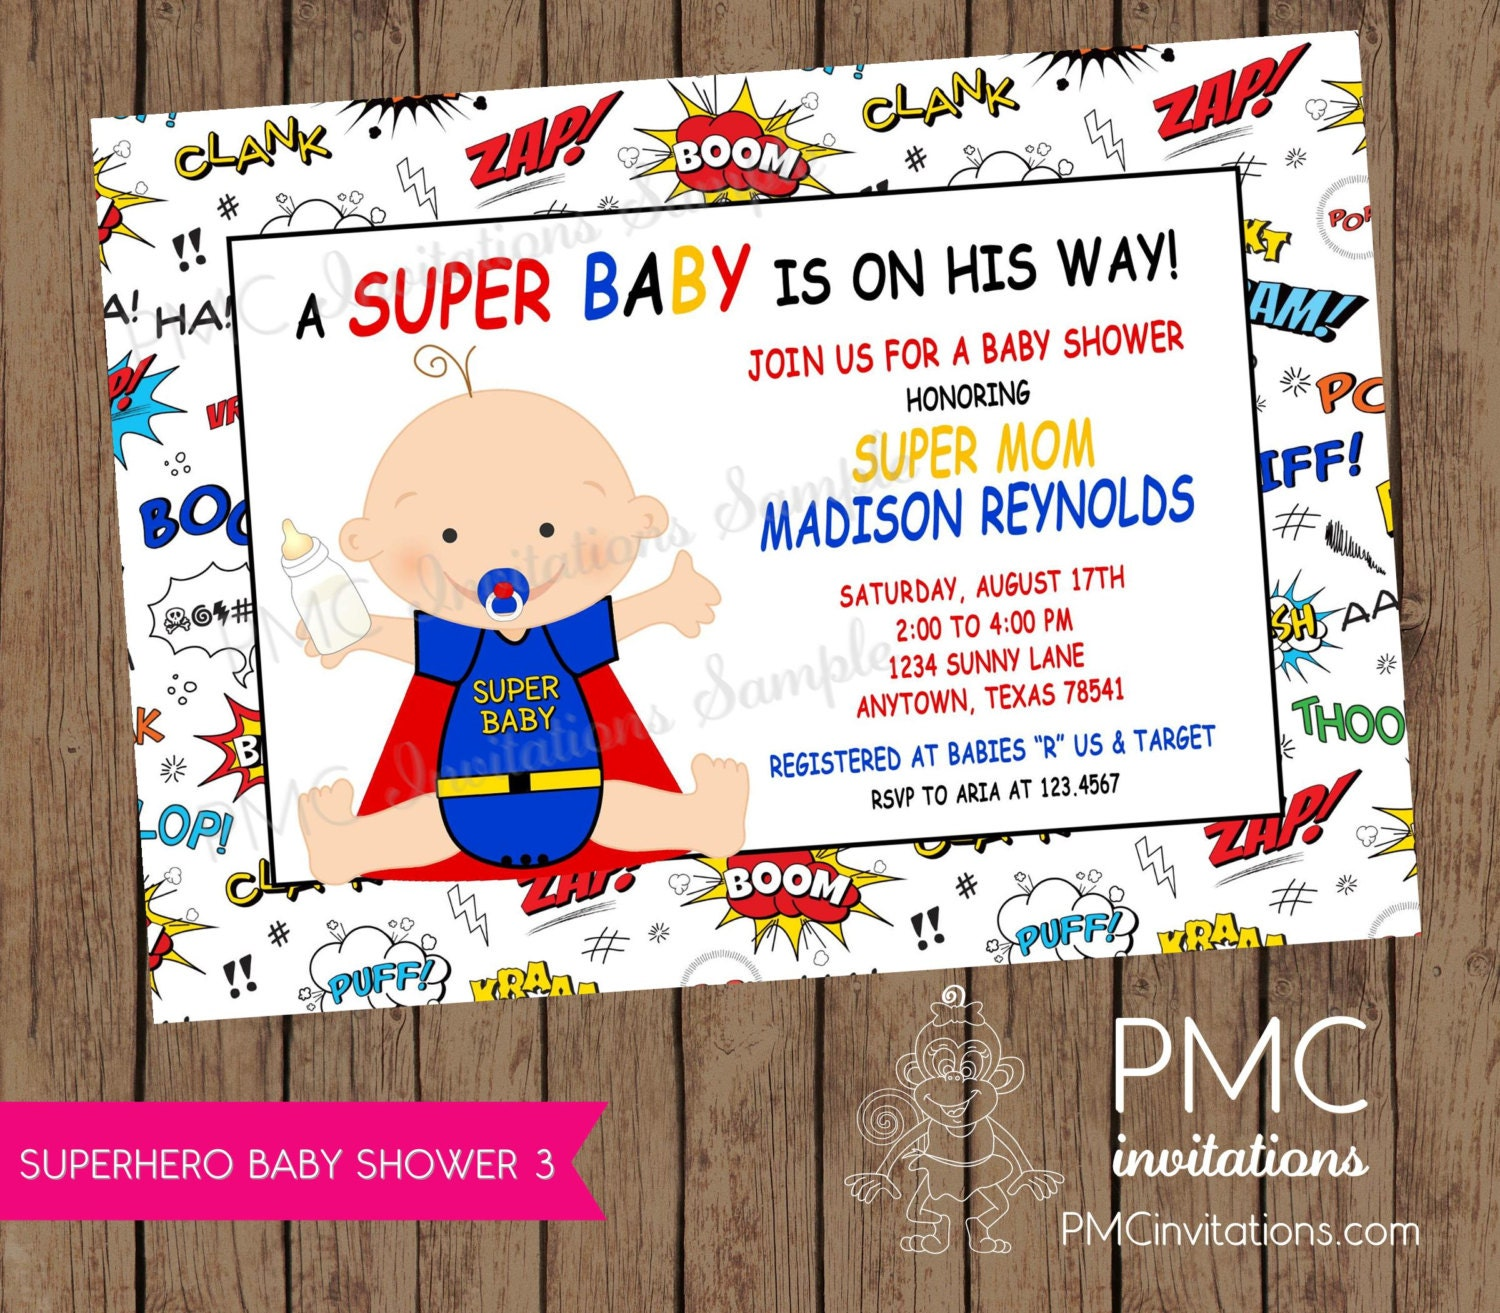 Superhero Baby Shower Invitations 100 Each With Envelopes